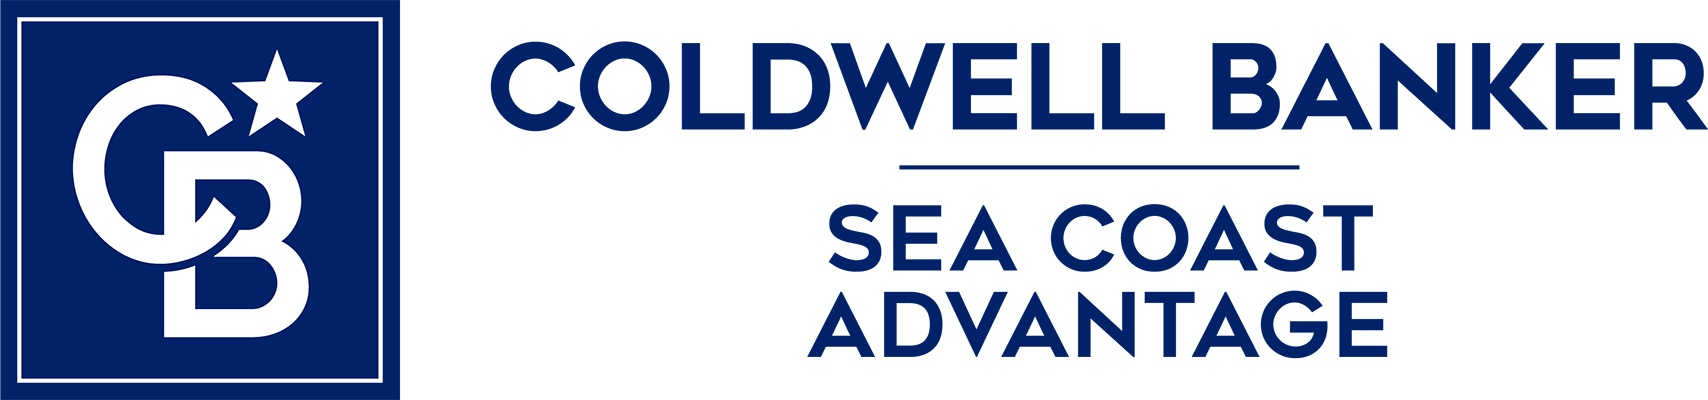 Amy Hoover - Coldwell Banker Sea Coast Advantage Realty Logo